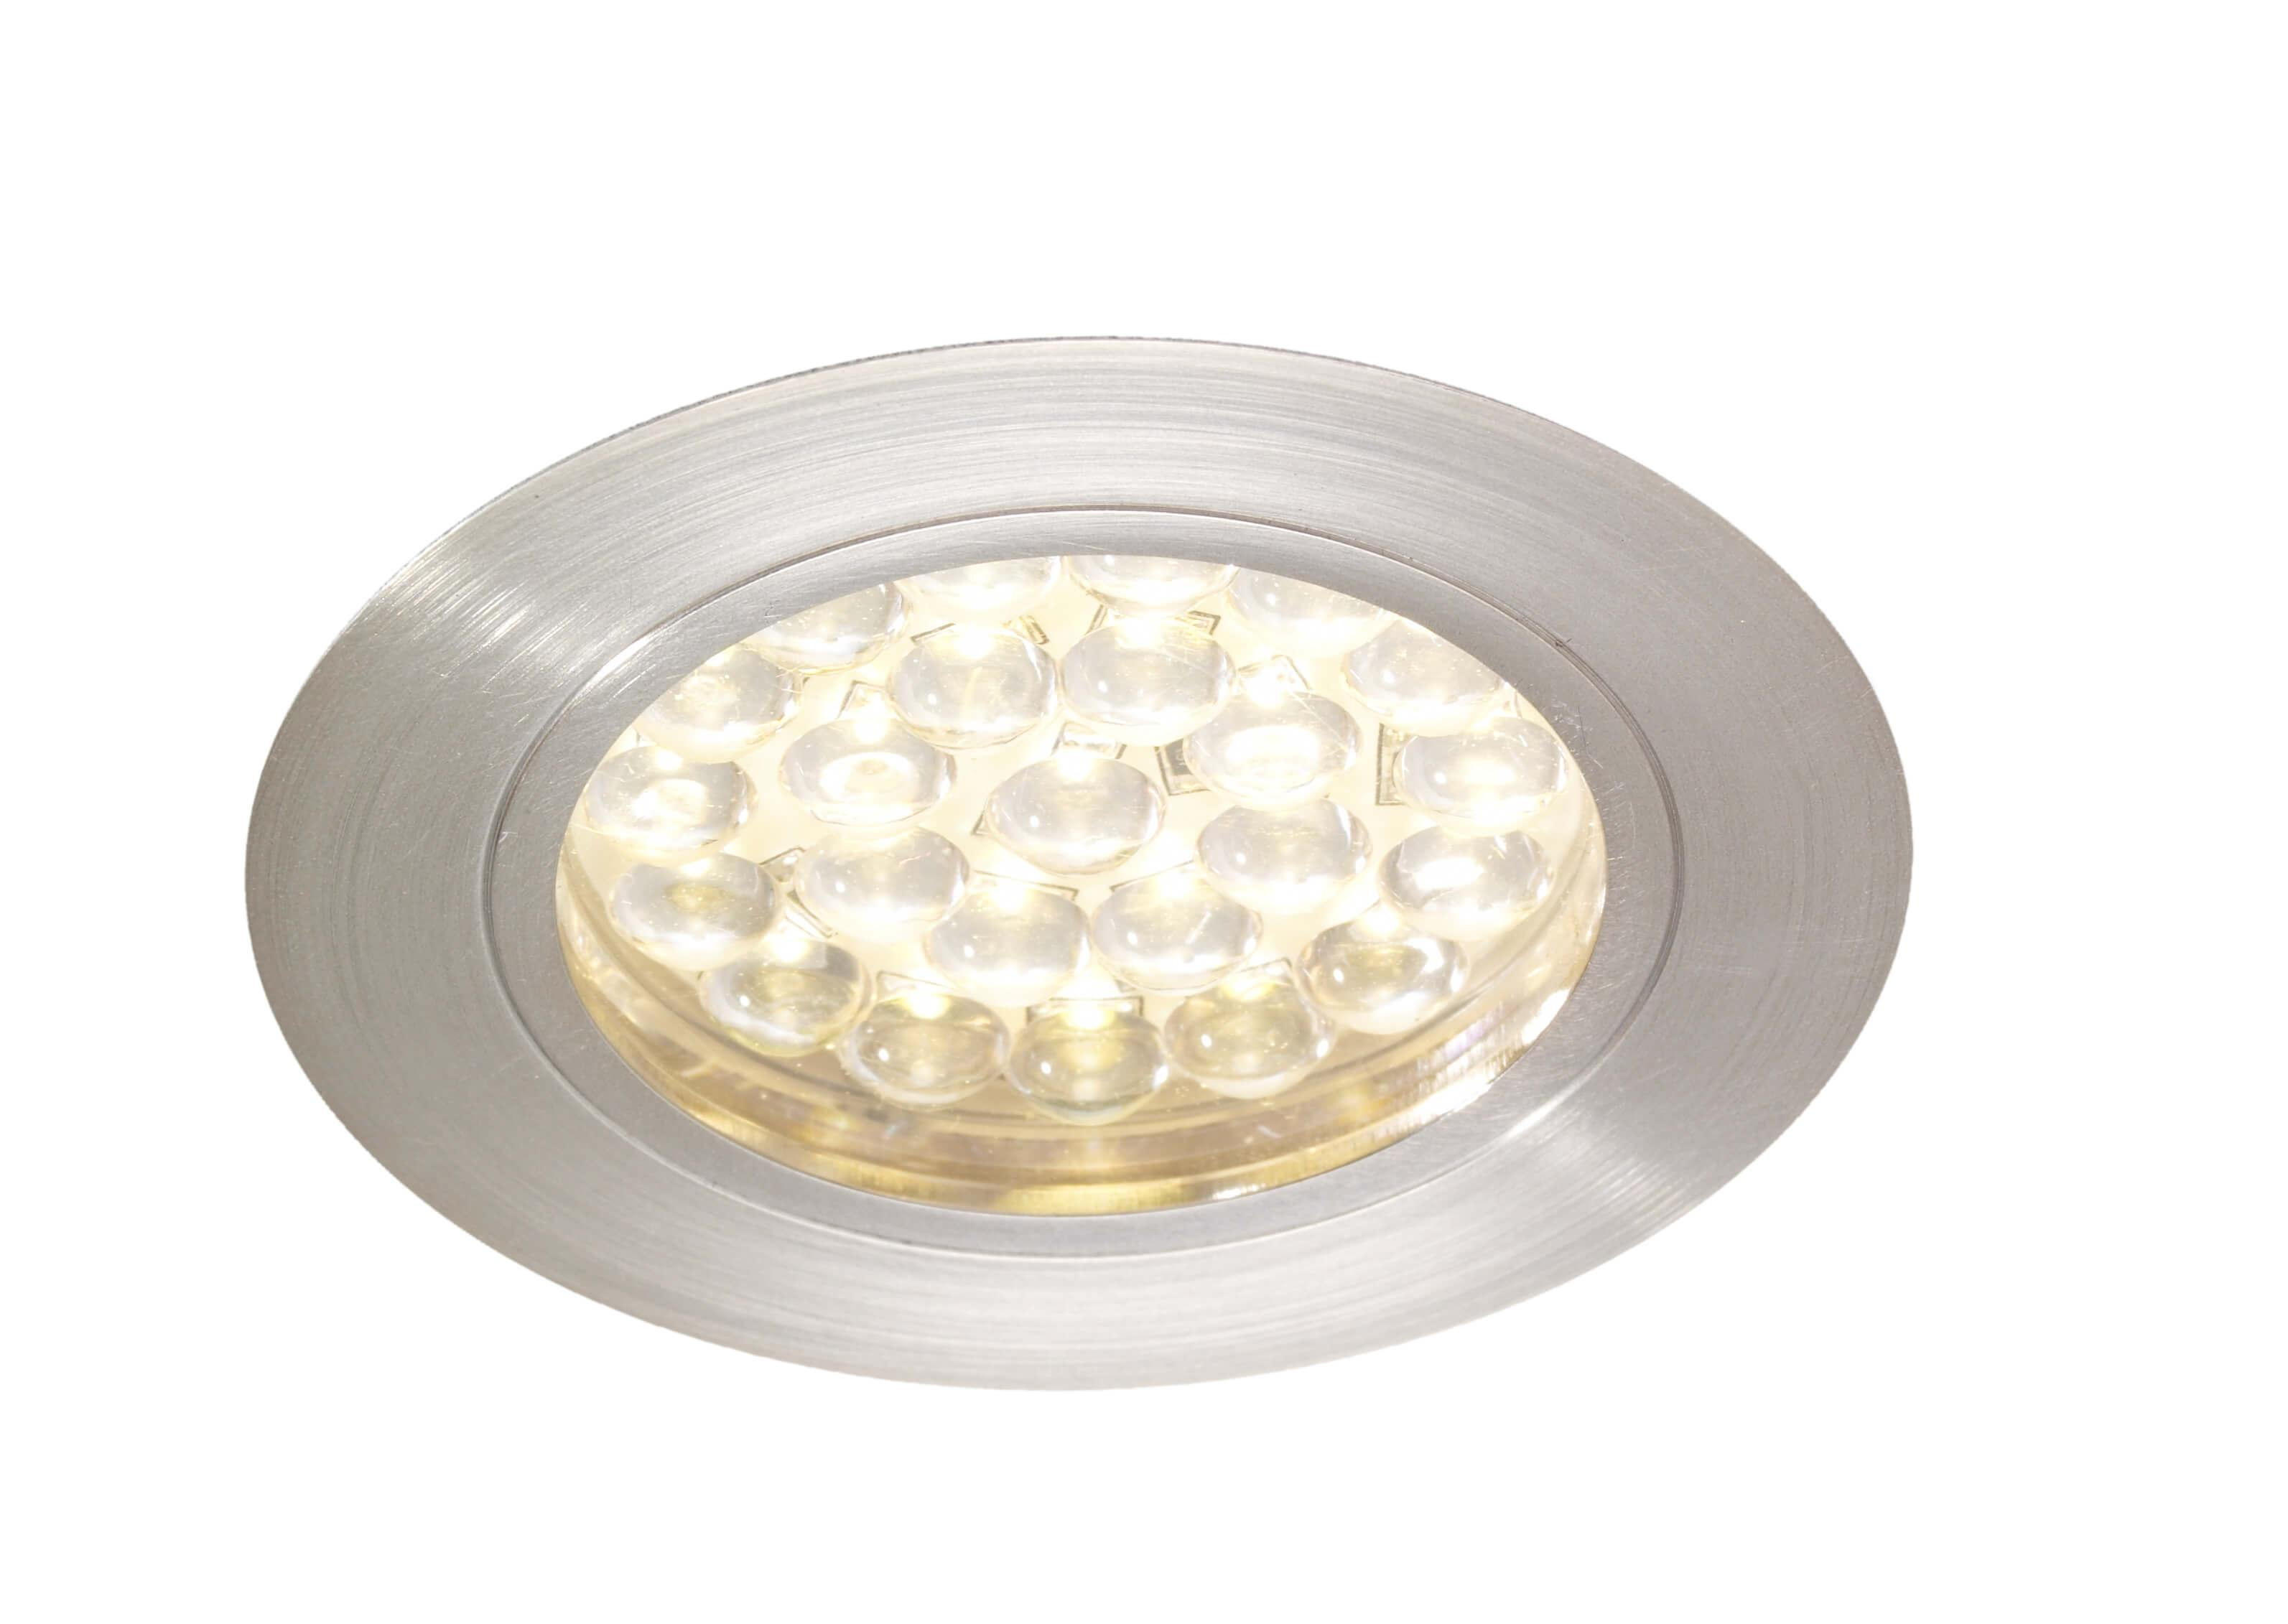 Recessed 1.8w LED Under Cabinet Light   Cool White Or Warm White LED